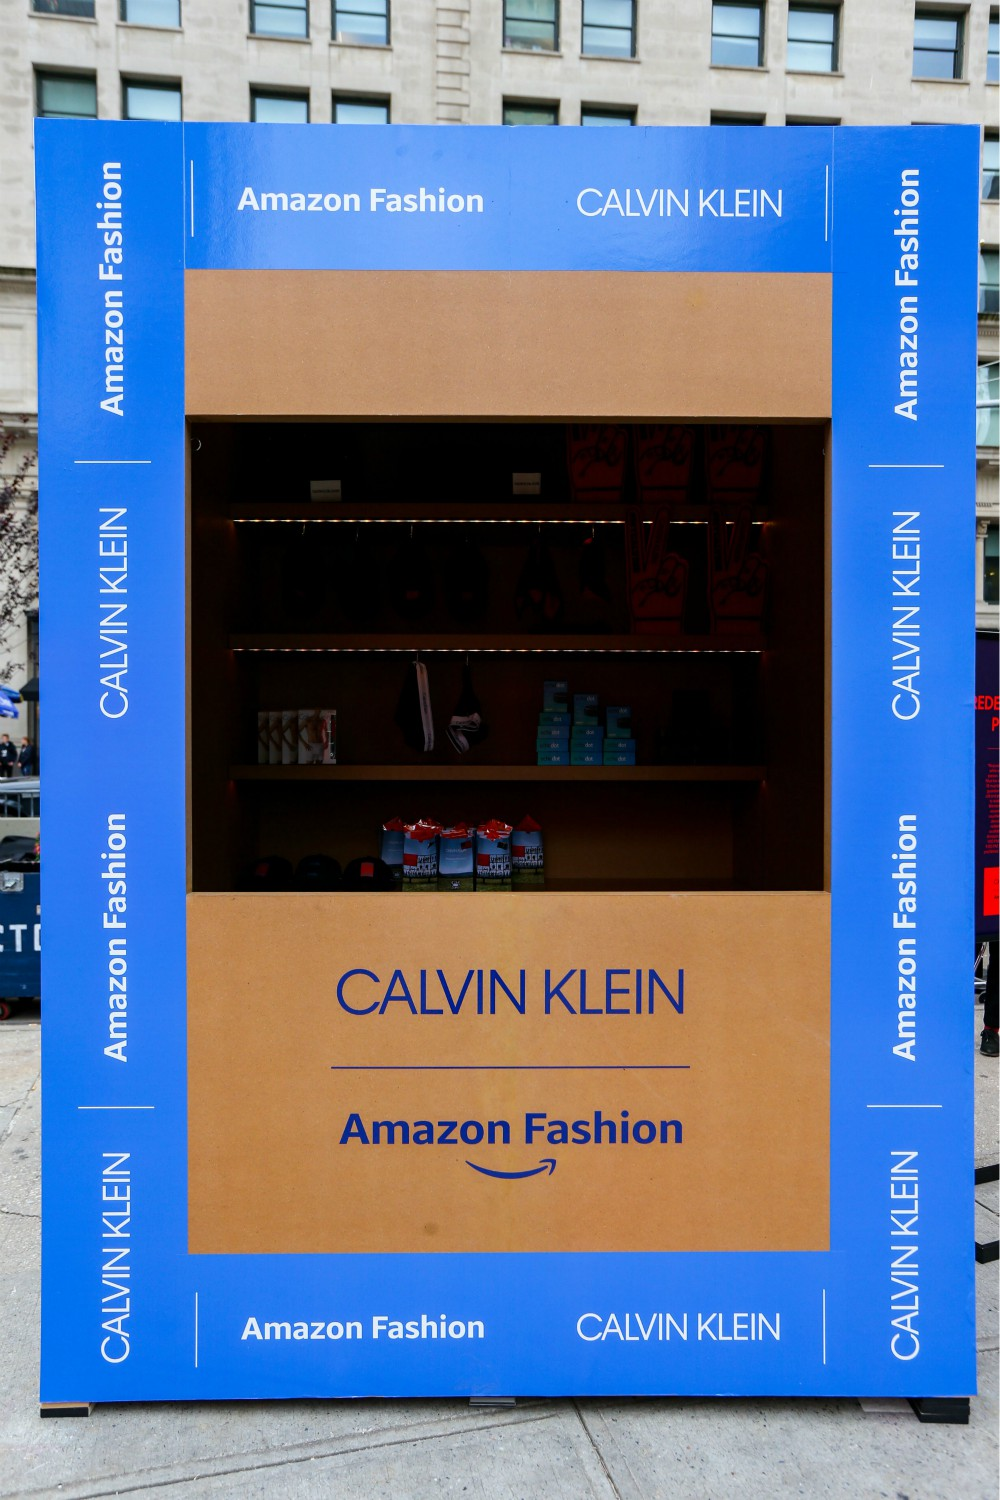 Despite partnerships with brands like Calvin Klein, Amazon is doubling down on private label brands.